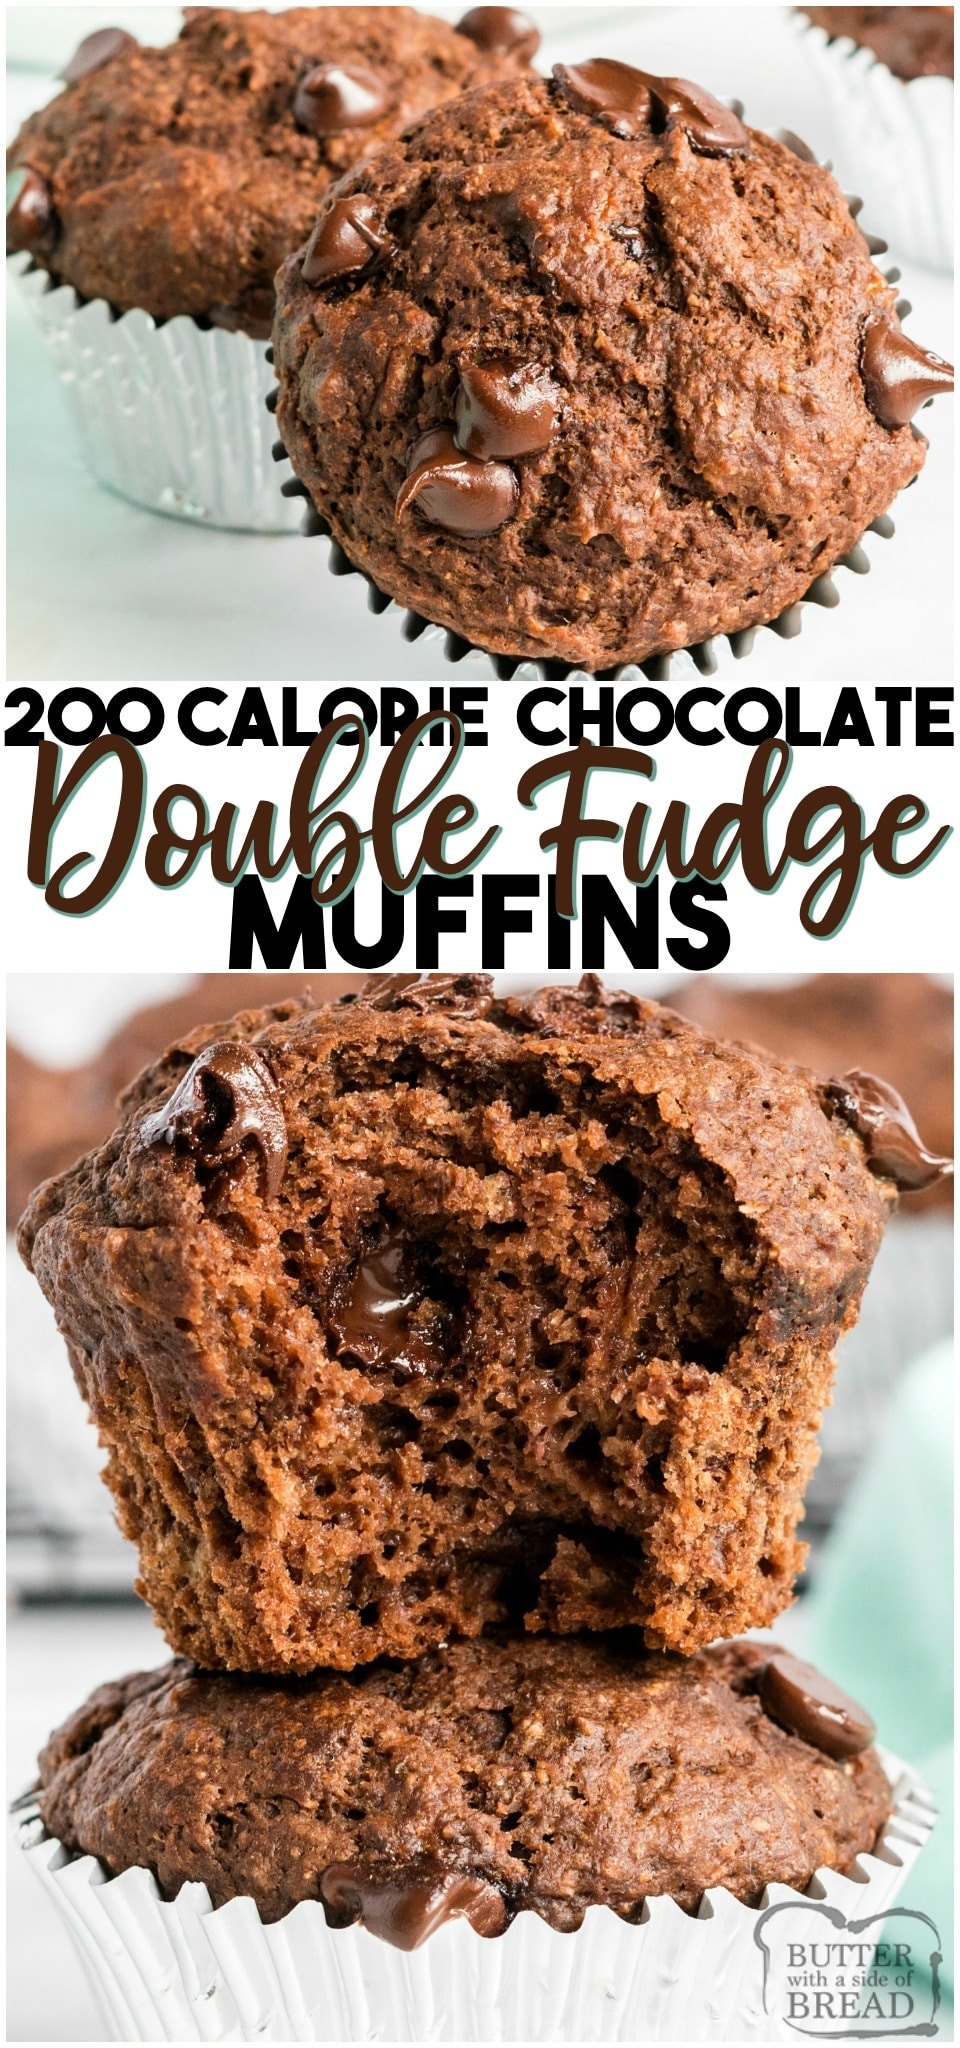 200 Calorie Double Fudge muffins made with applesauce, bananas, whole wheat flour, cocoa powder & chocolate chips! Perfect low-cal muffin recipe for chocolate lovers!